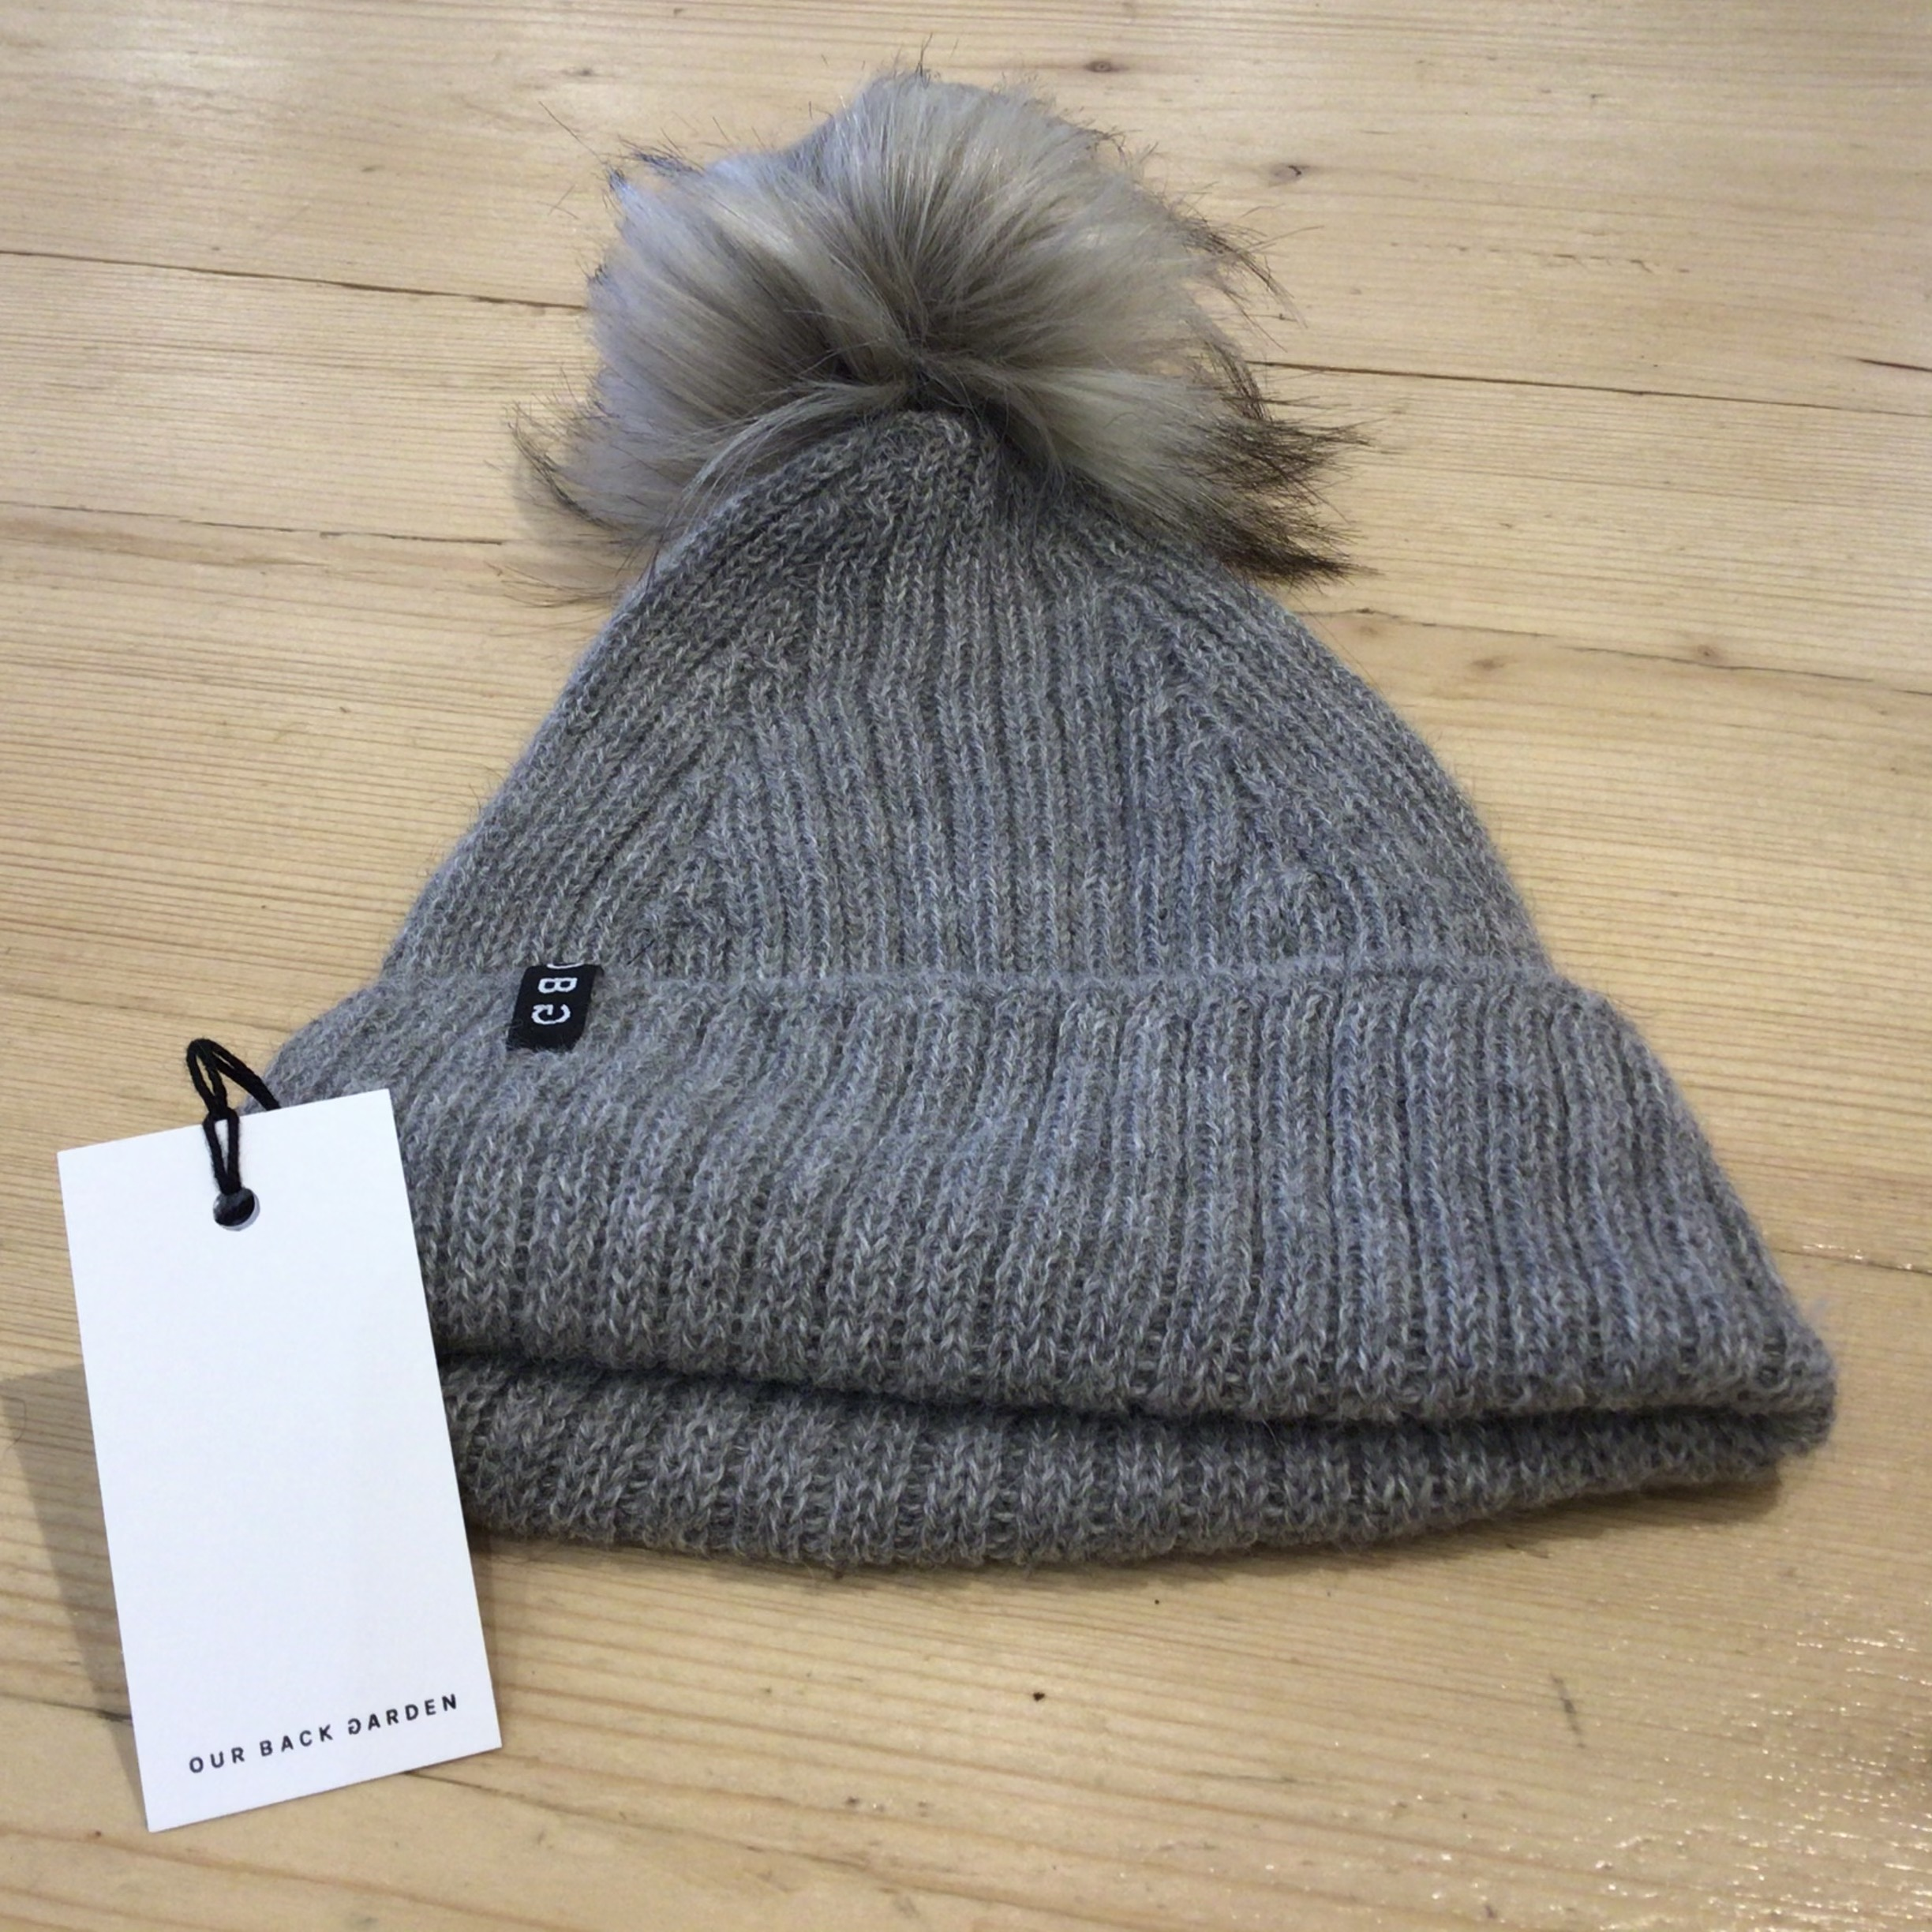 OBG - 100% Alpaca wool hat with Pom Pom, Grey & Raccoon